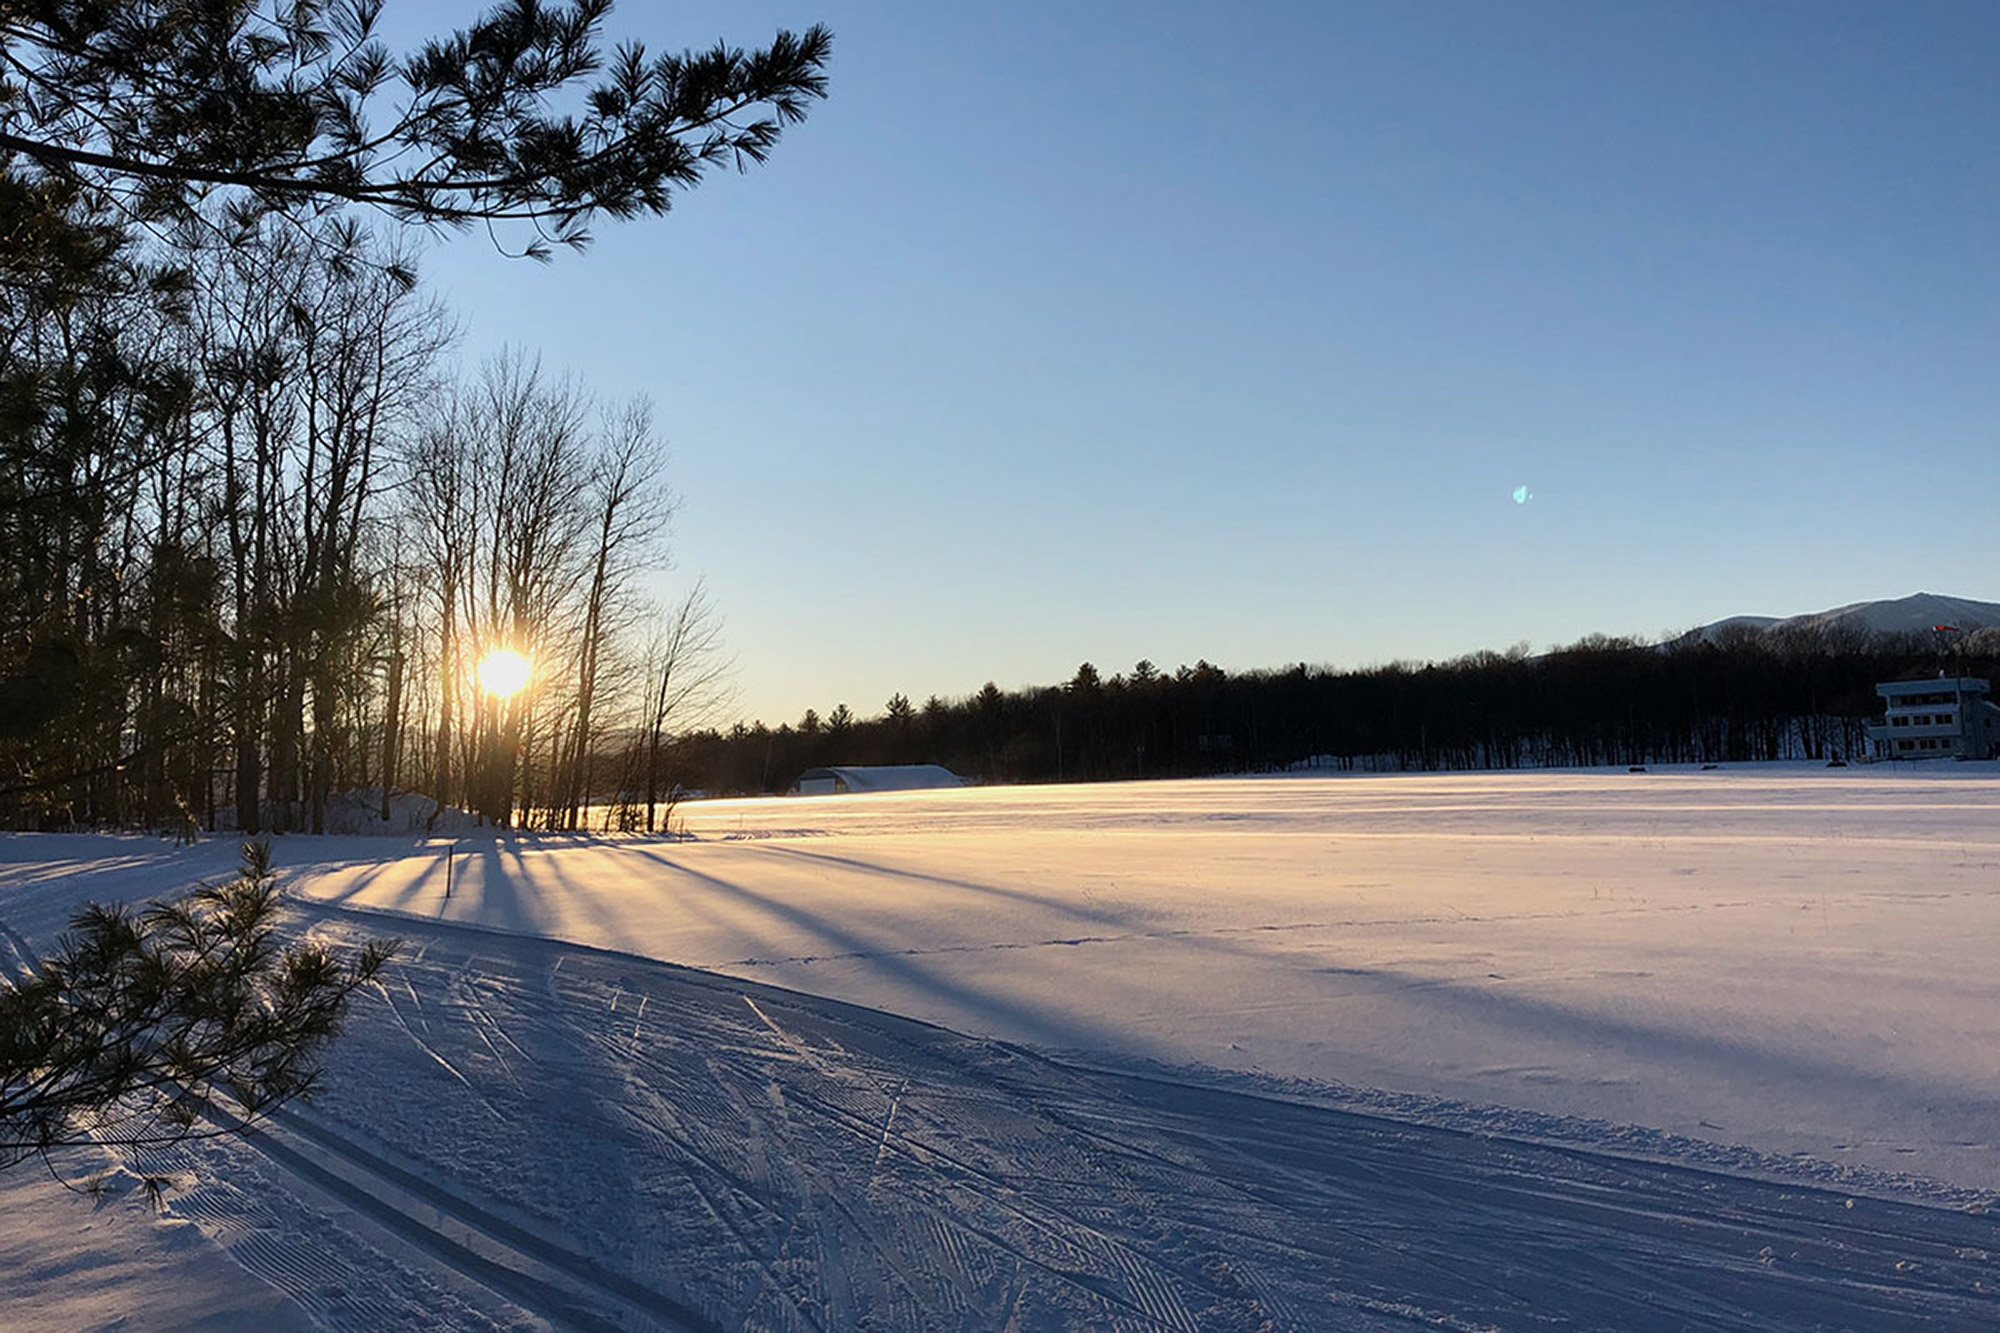 Groomed trails at Ole's in Warren   Credit: Hans-Peter Riehle